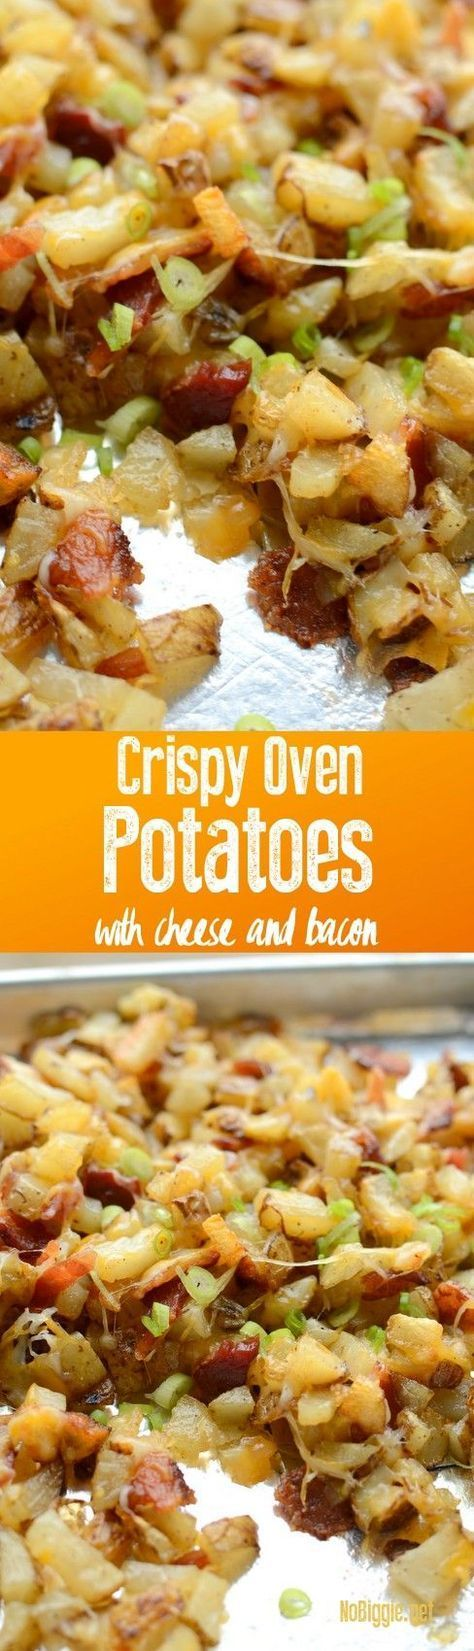 Crispy Oven Potatoes with cheese and bacon | they taste just like Outback Steak House Cheese Fries | recipe on http://NoBiggie.net